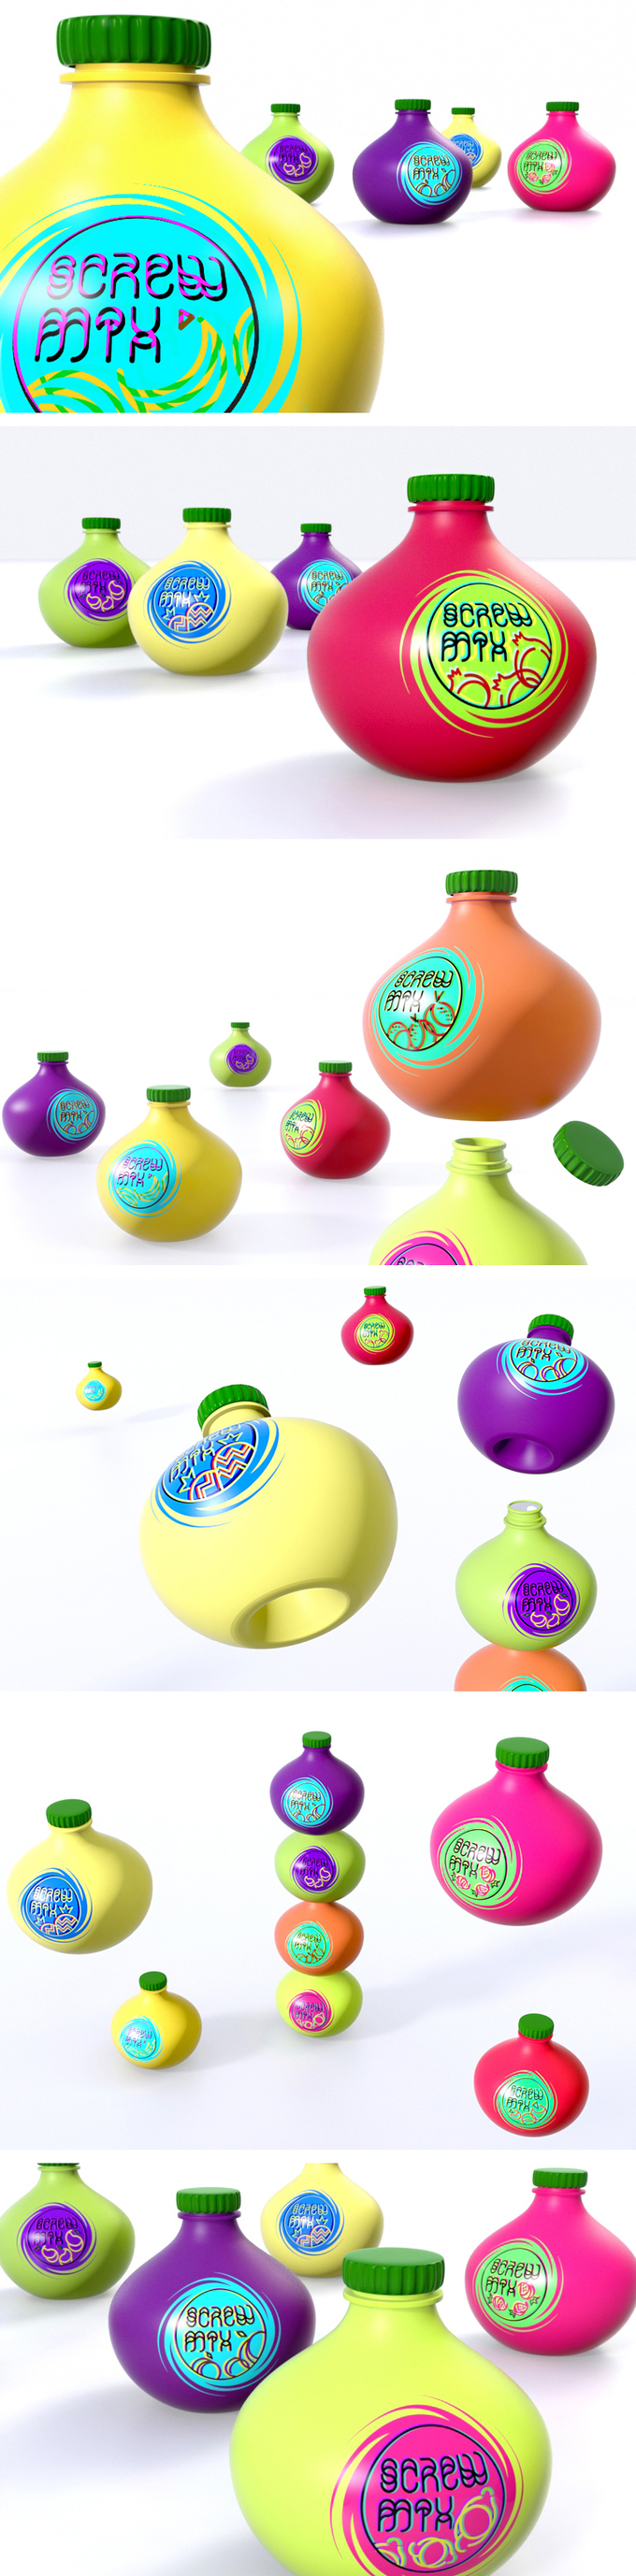 ScrewMix. Just mix the juices! Strawberry + banana, apple + pear, plum + banana... Concept by DotOrg. Vibrant #packaging PD